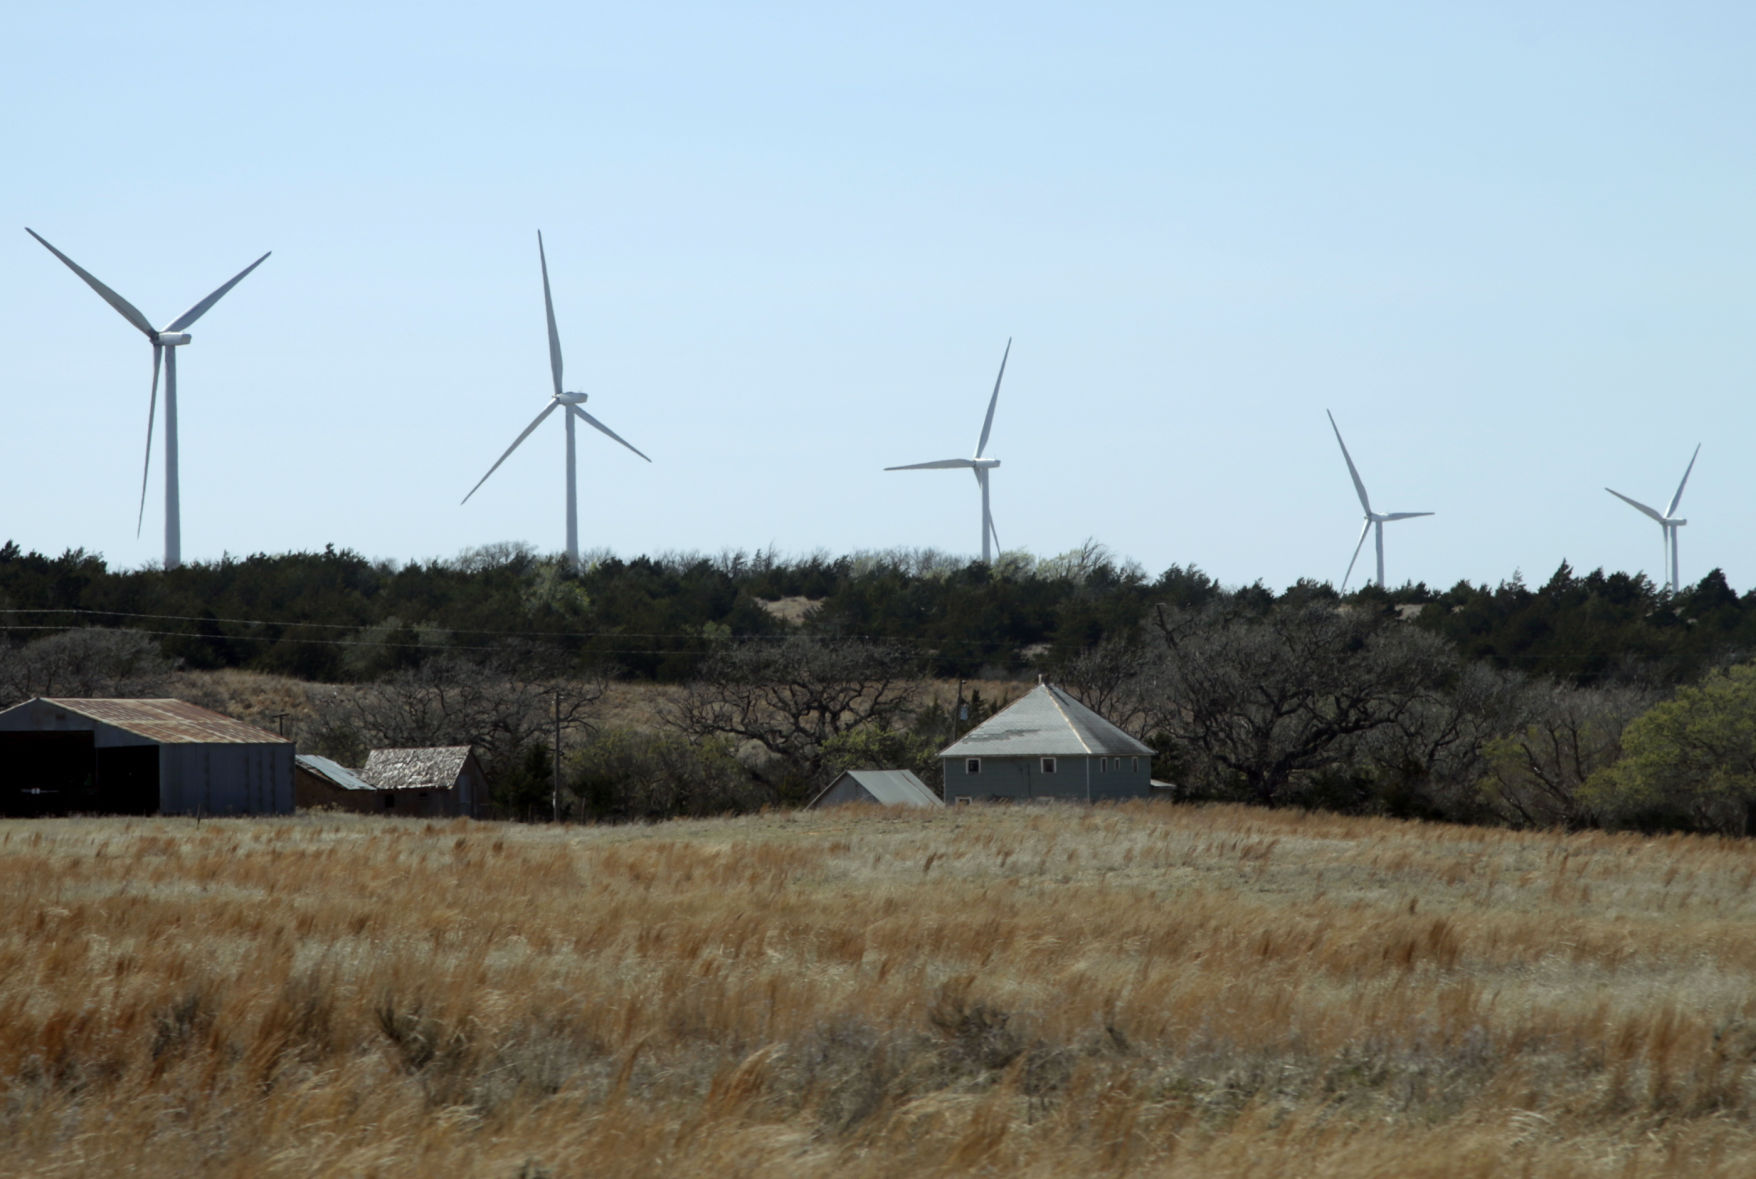 GE nabs turbine deal for 2-GW wind project in Oklahoma